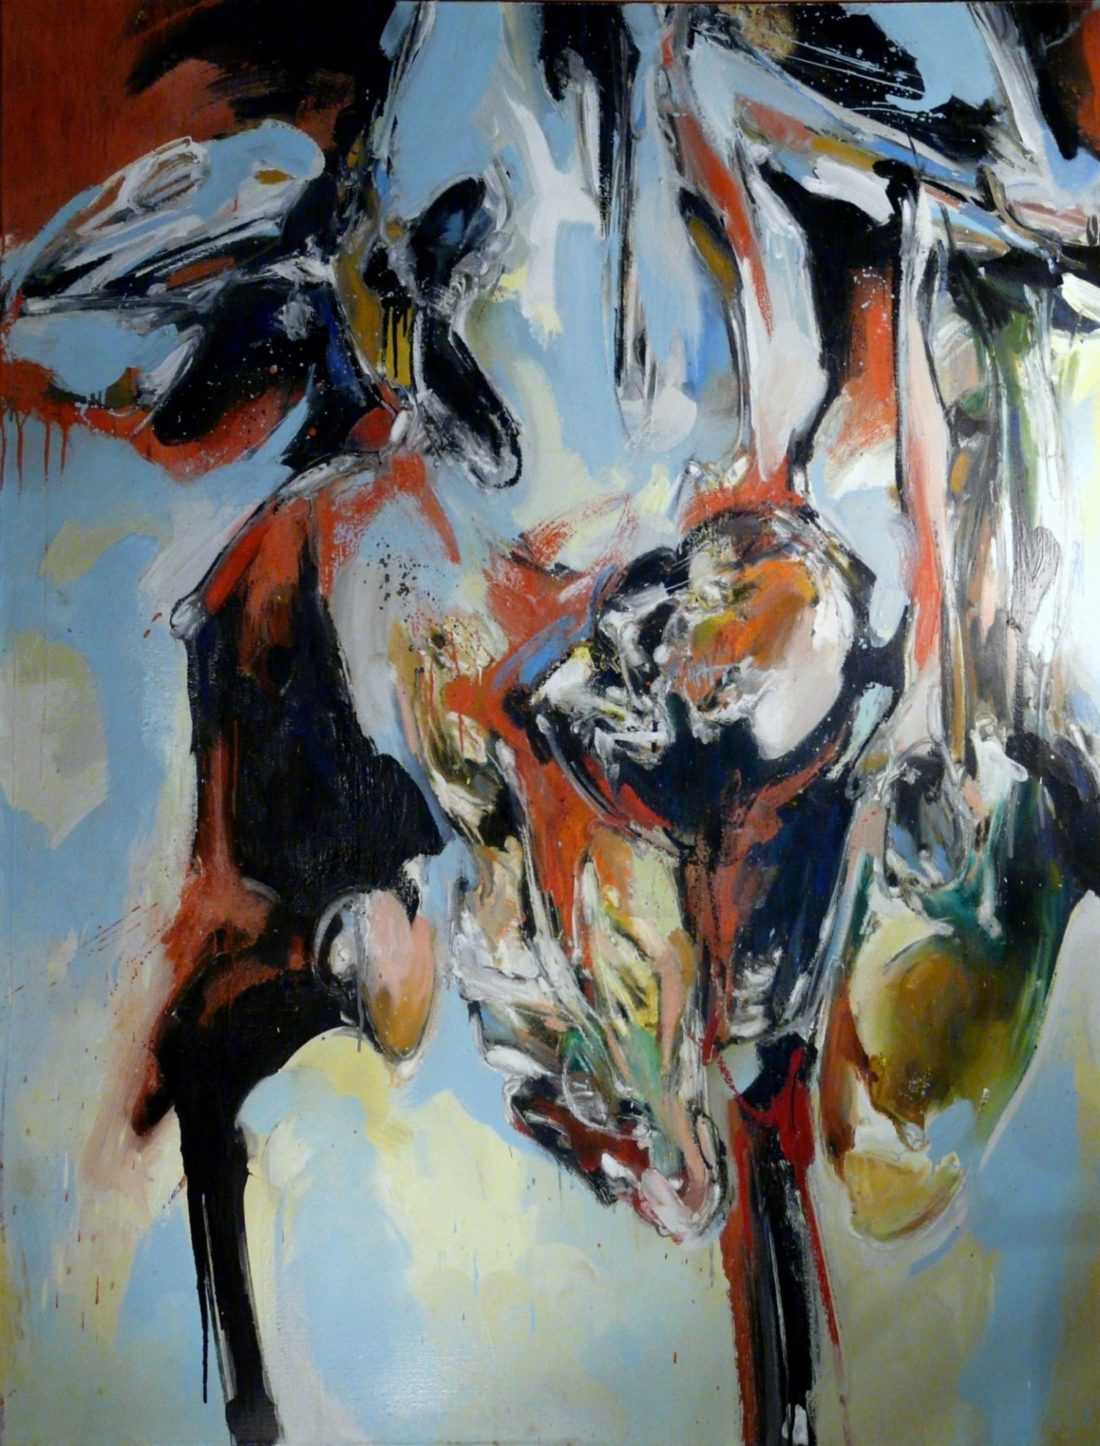 peinture de Laurent Dubé, artiste contemporain, grand coloriste ,composition expressionniste